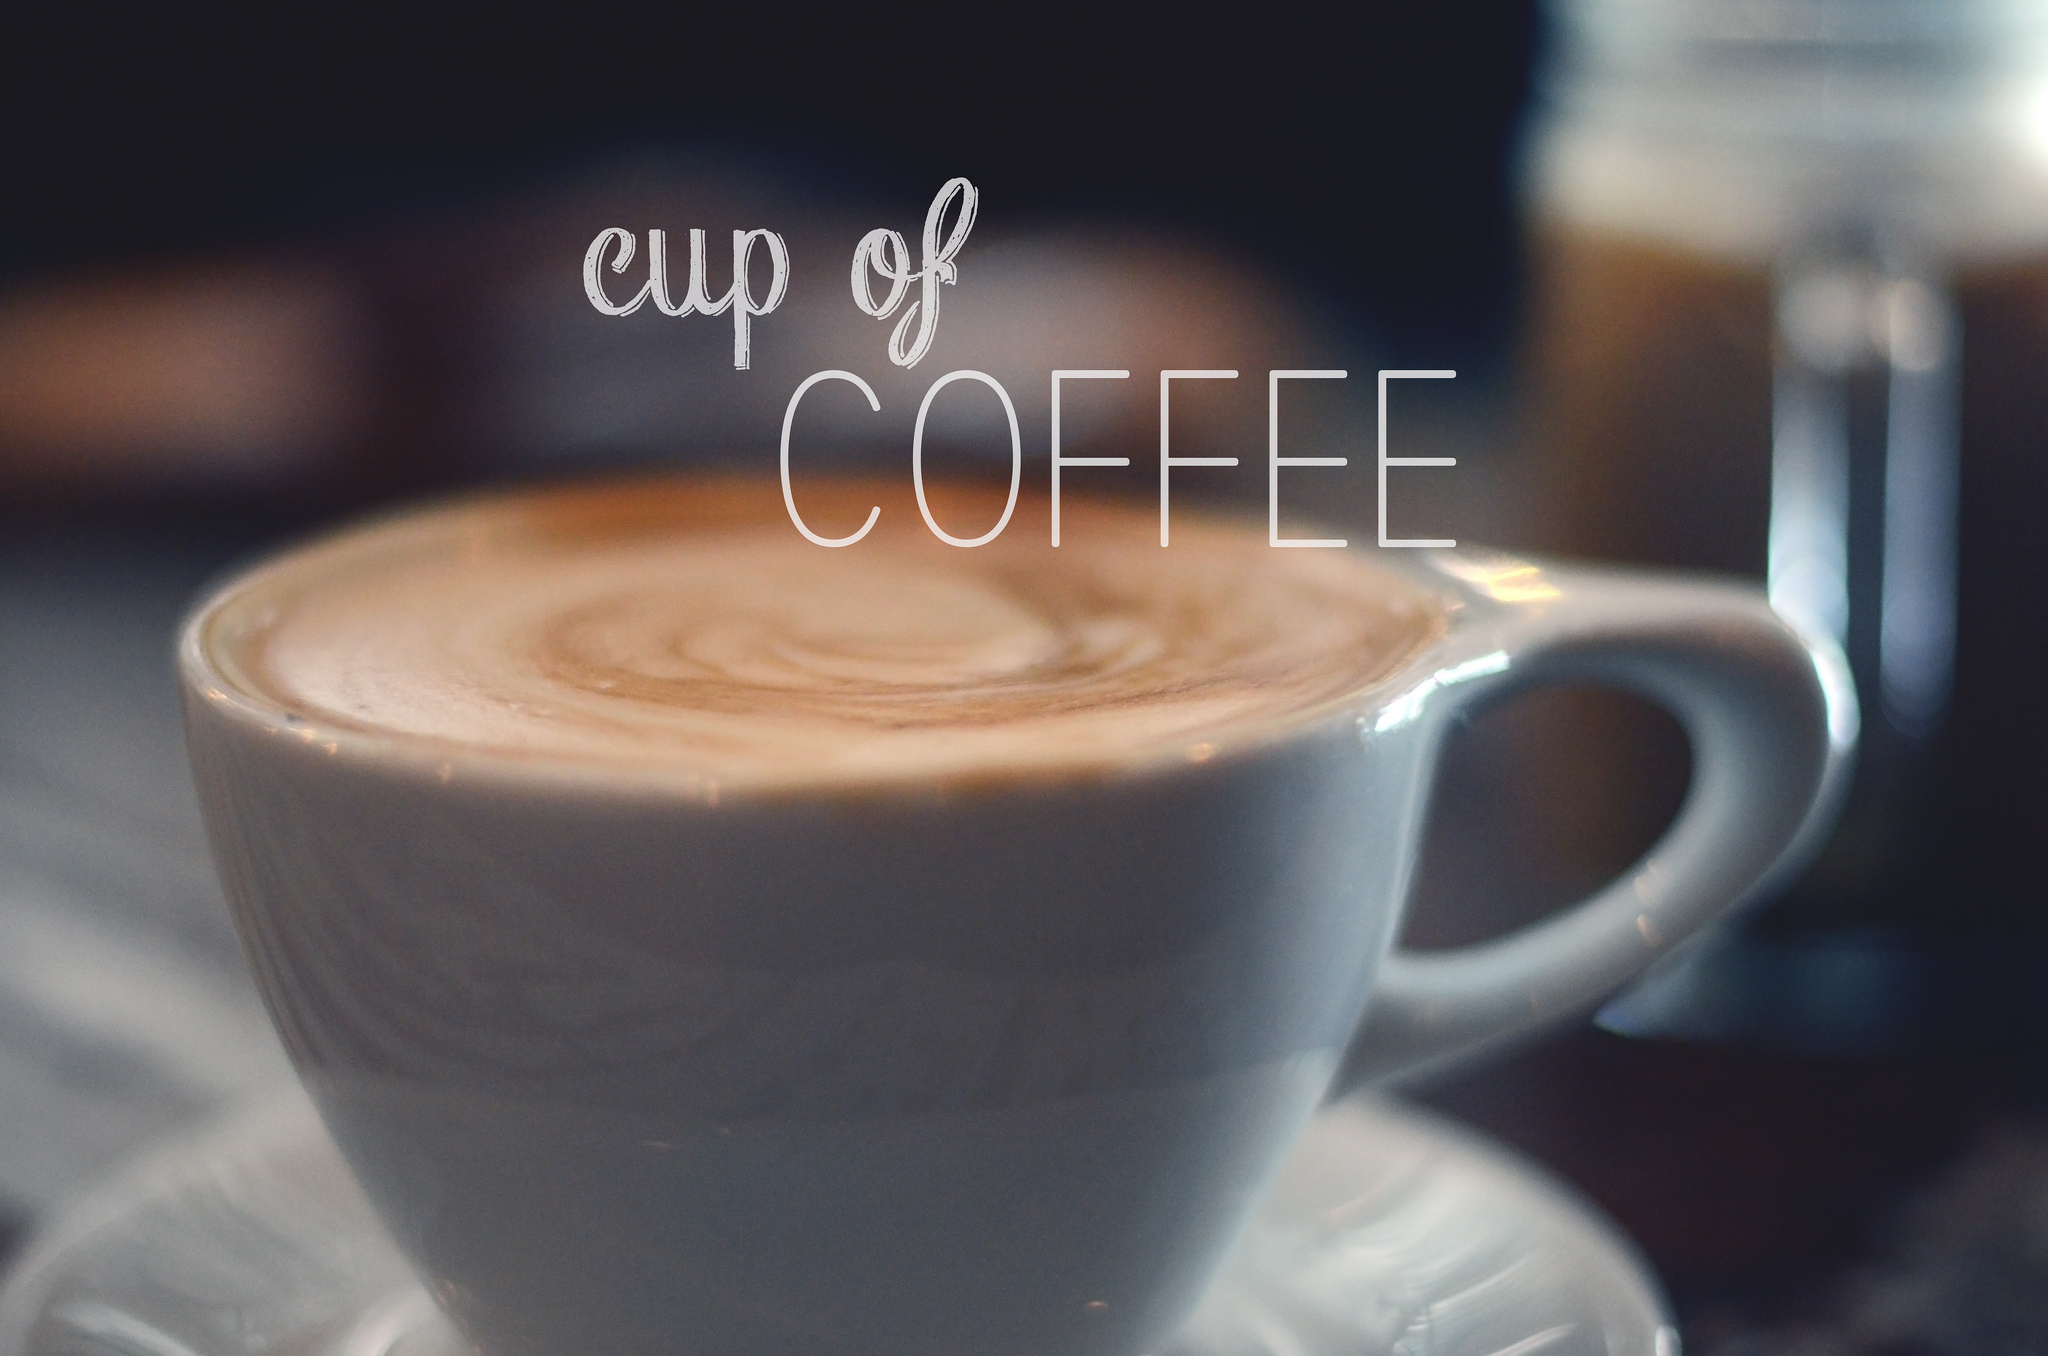 Explore the 1 Cup of Coffee you drink - Fact files on Coffee